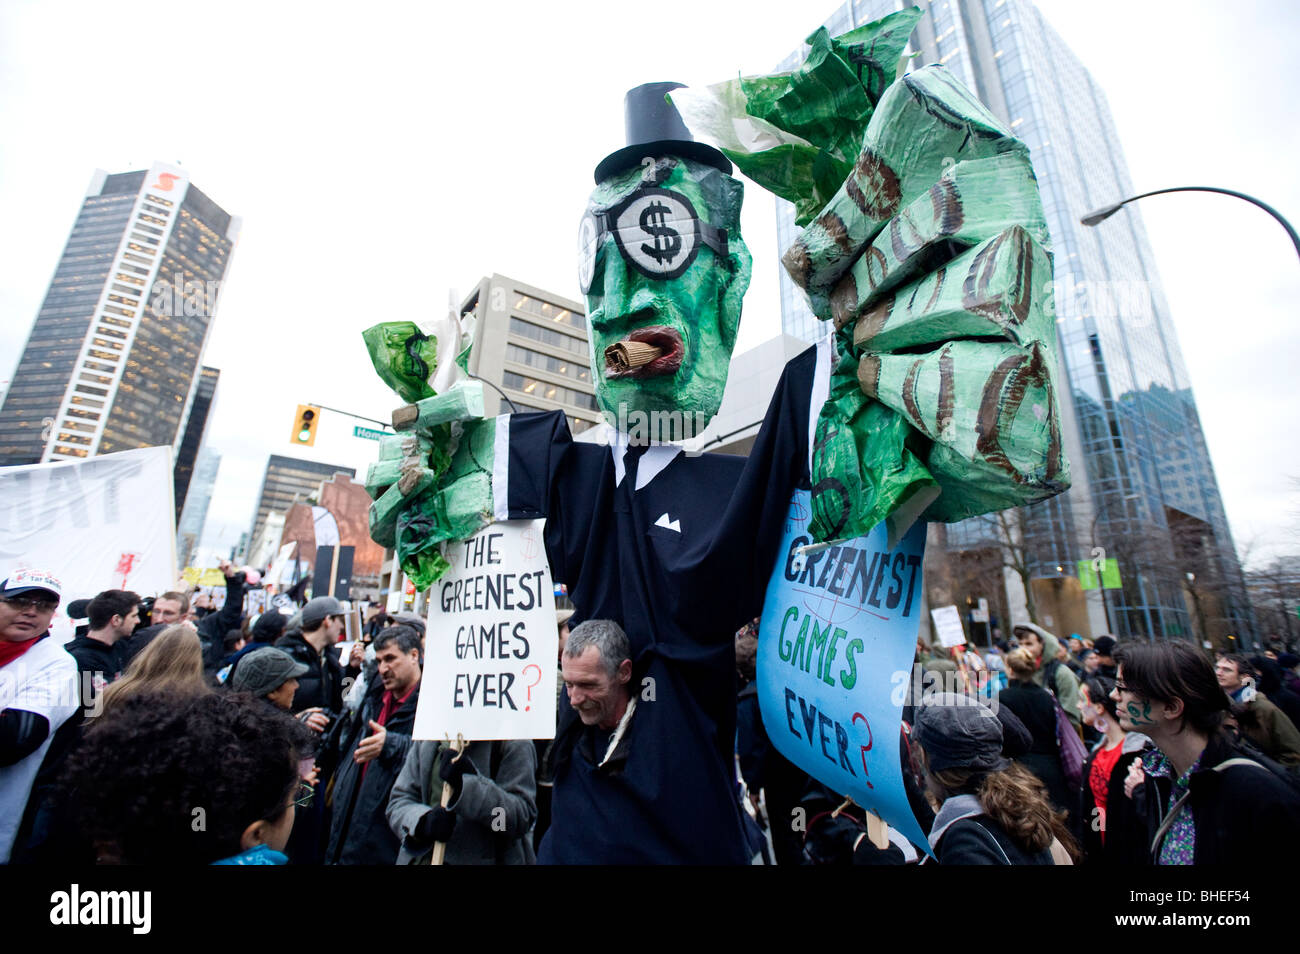 A giant puppet at an anti Olympic protest during the opening day of the 2010 Vancouver Olympic games. February 12th, - Stock Image